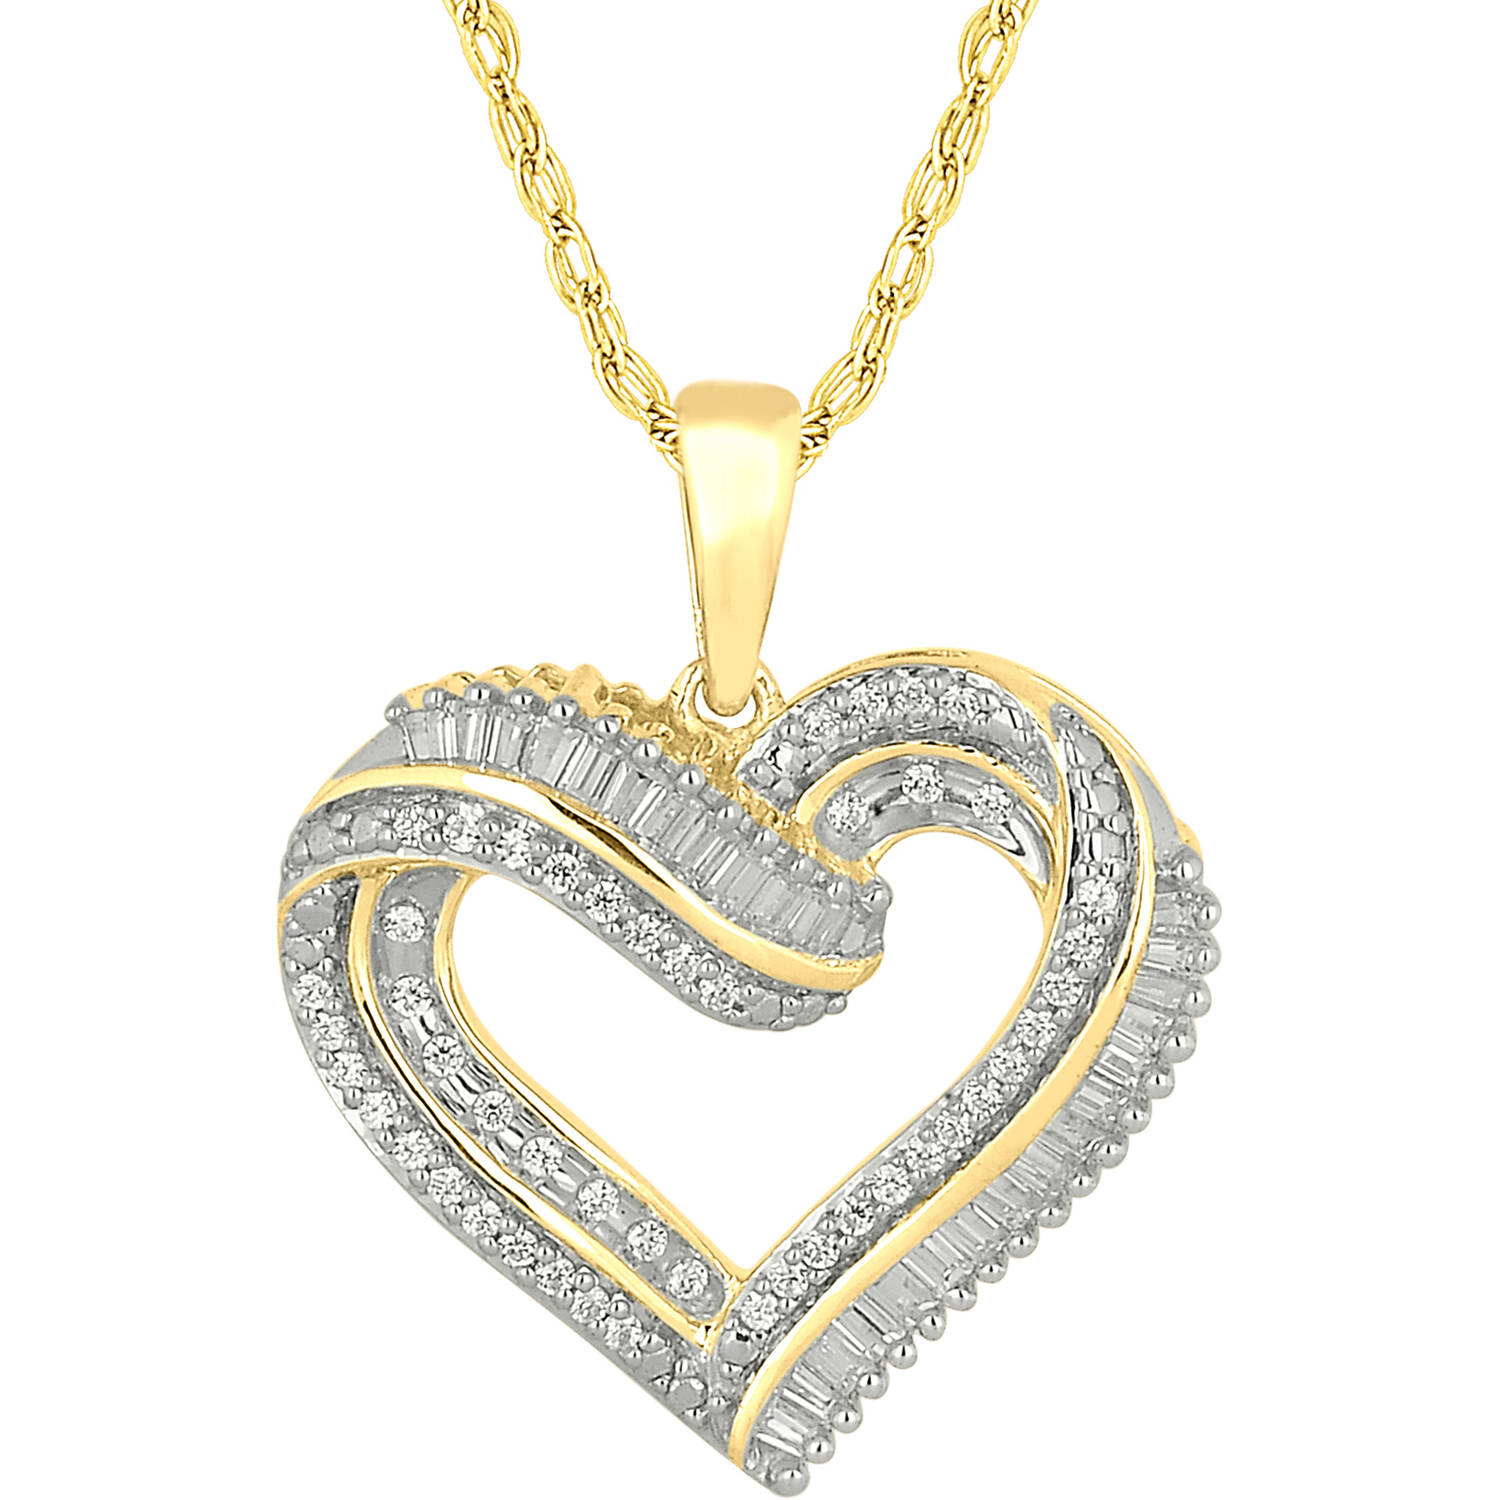 1 3 Carat T.W. Round and Baguette Diamond 10kt Yellow Gold Heart Pendant by INTERJEWEL